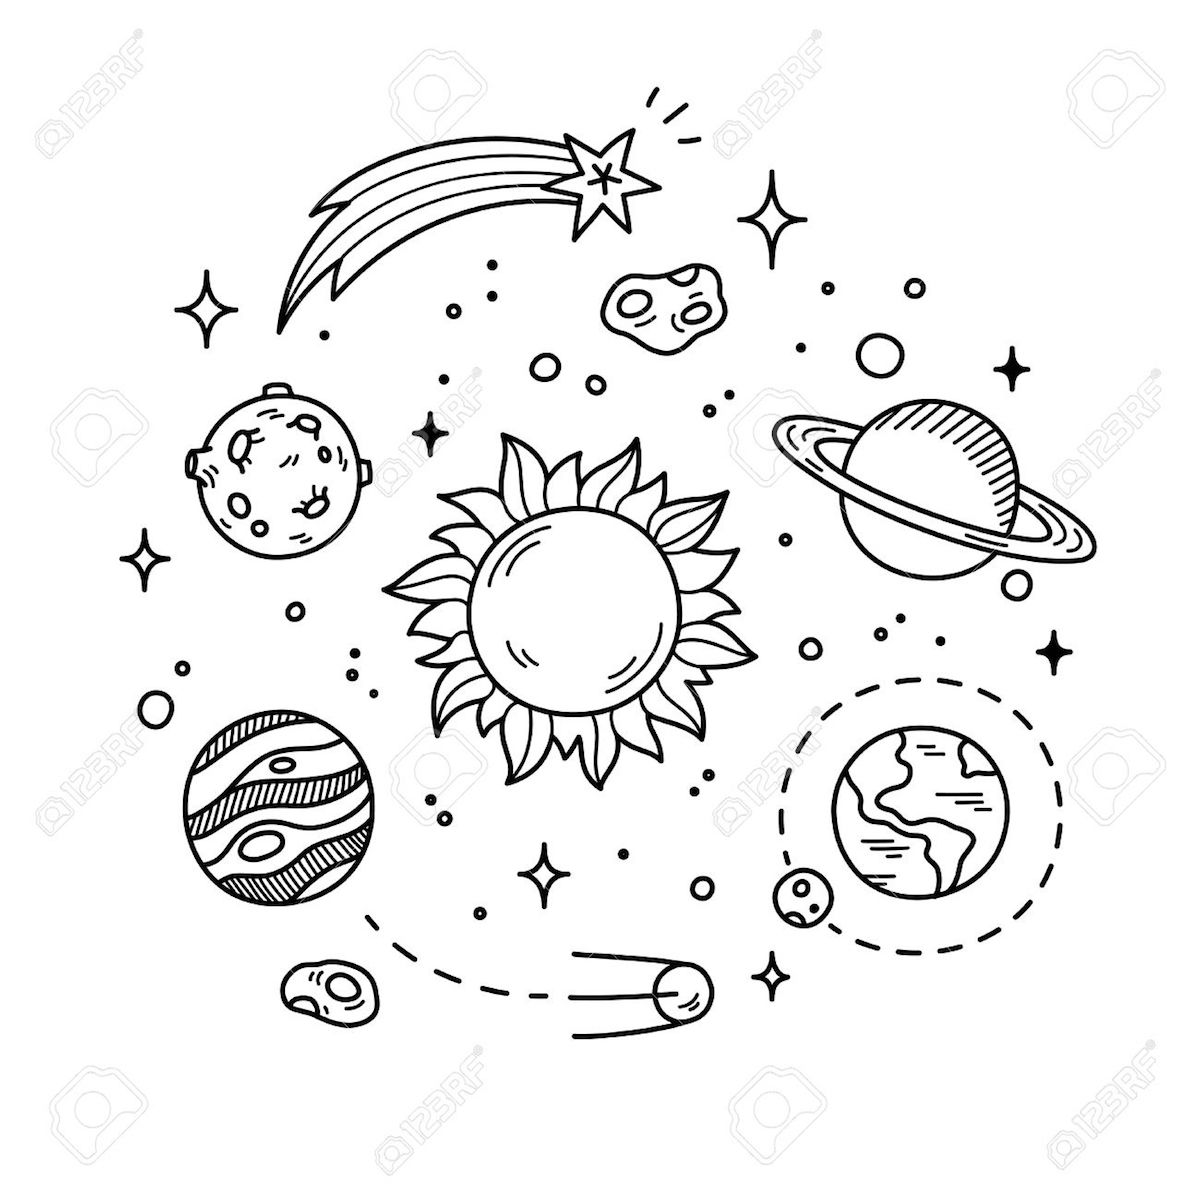 Outer Space Coloring Pages And Other Coloring Themes